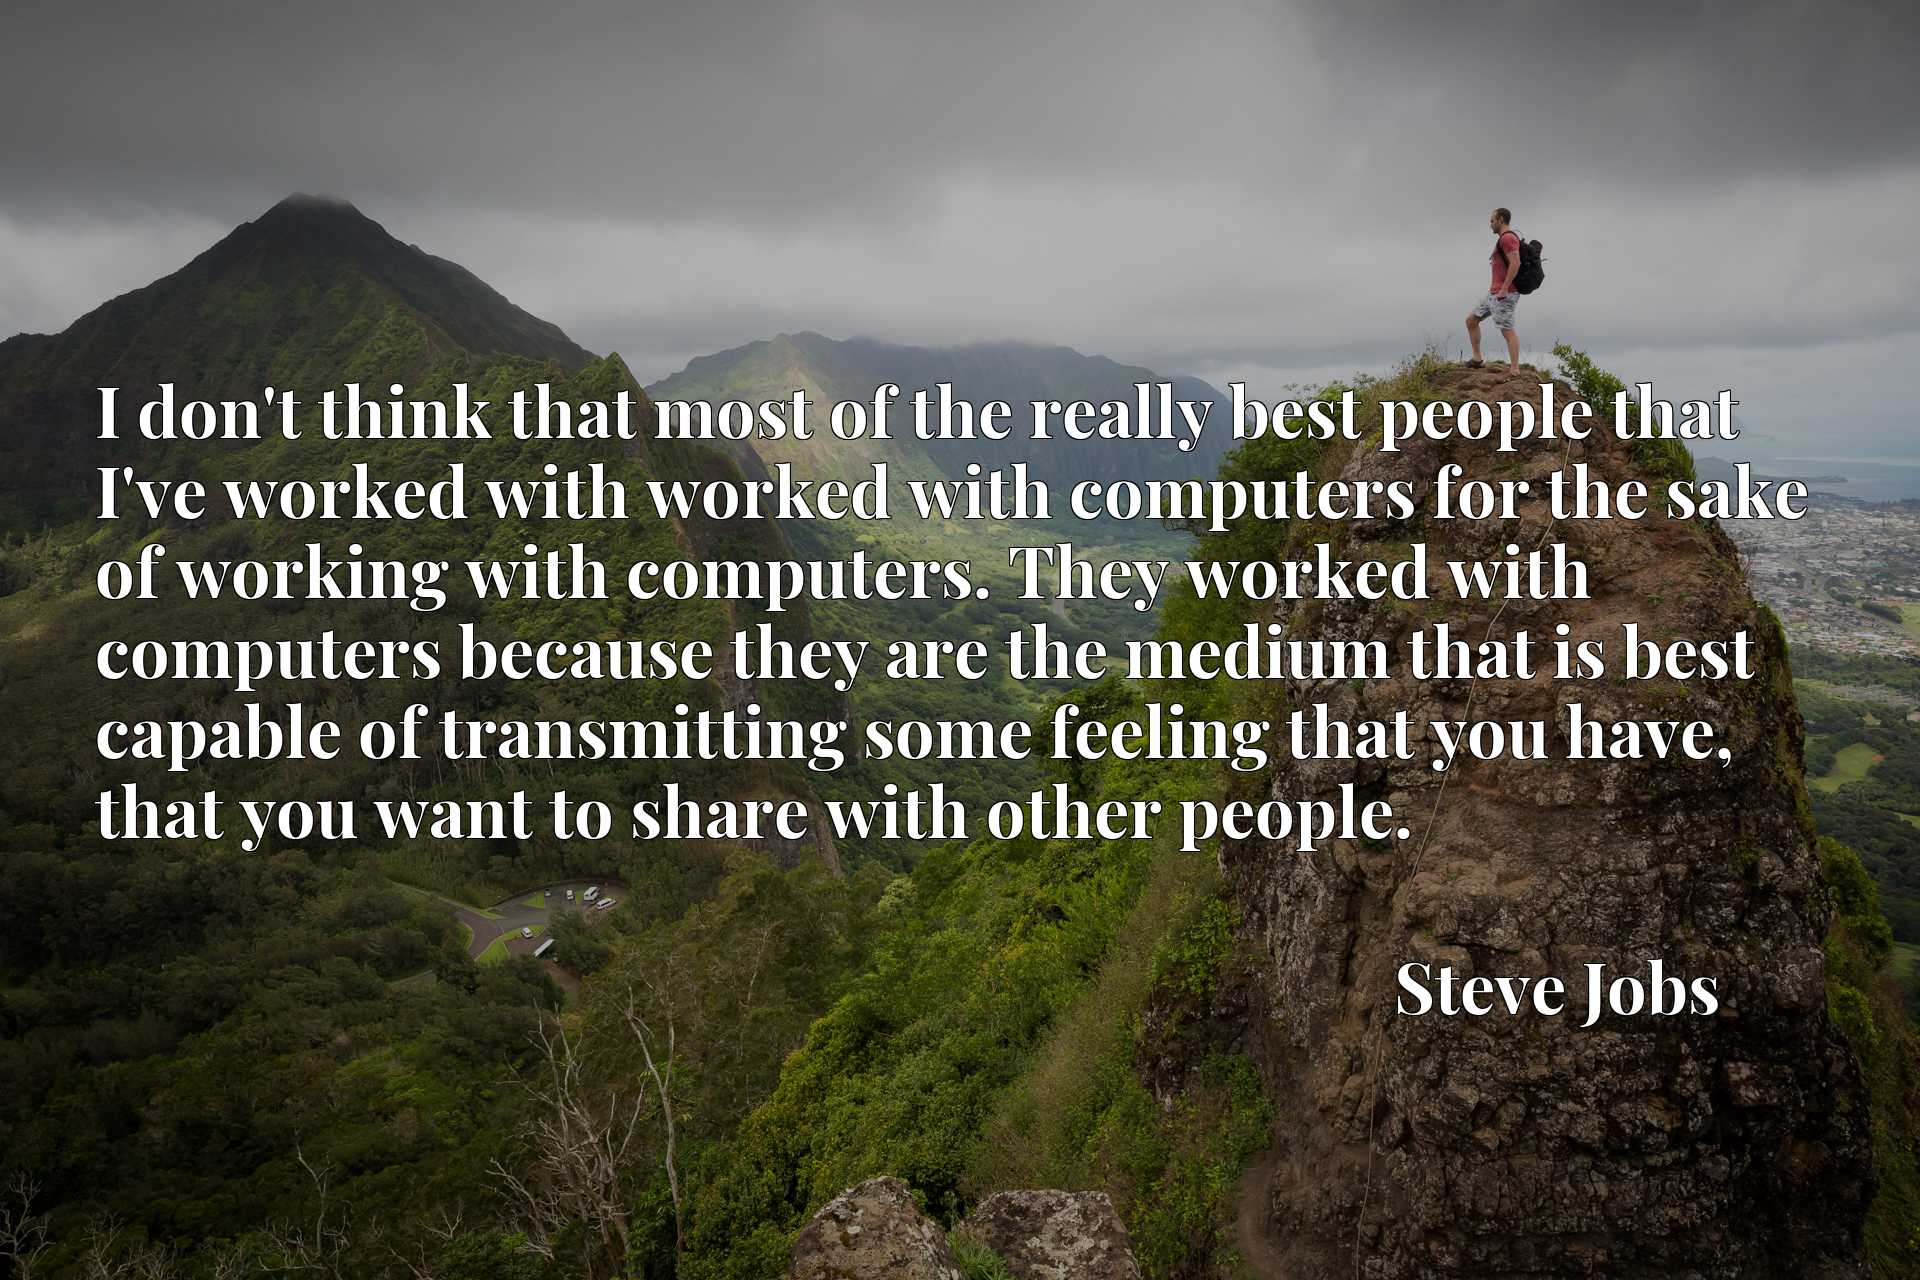 I don't think that most of the really best people that I've worked with worked with computers for the sake of working with computers. They worked with computers because they are the medium that is best capable of transmitting some feeling that you have, that you want to share with other people.